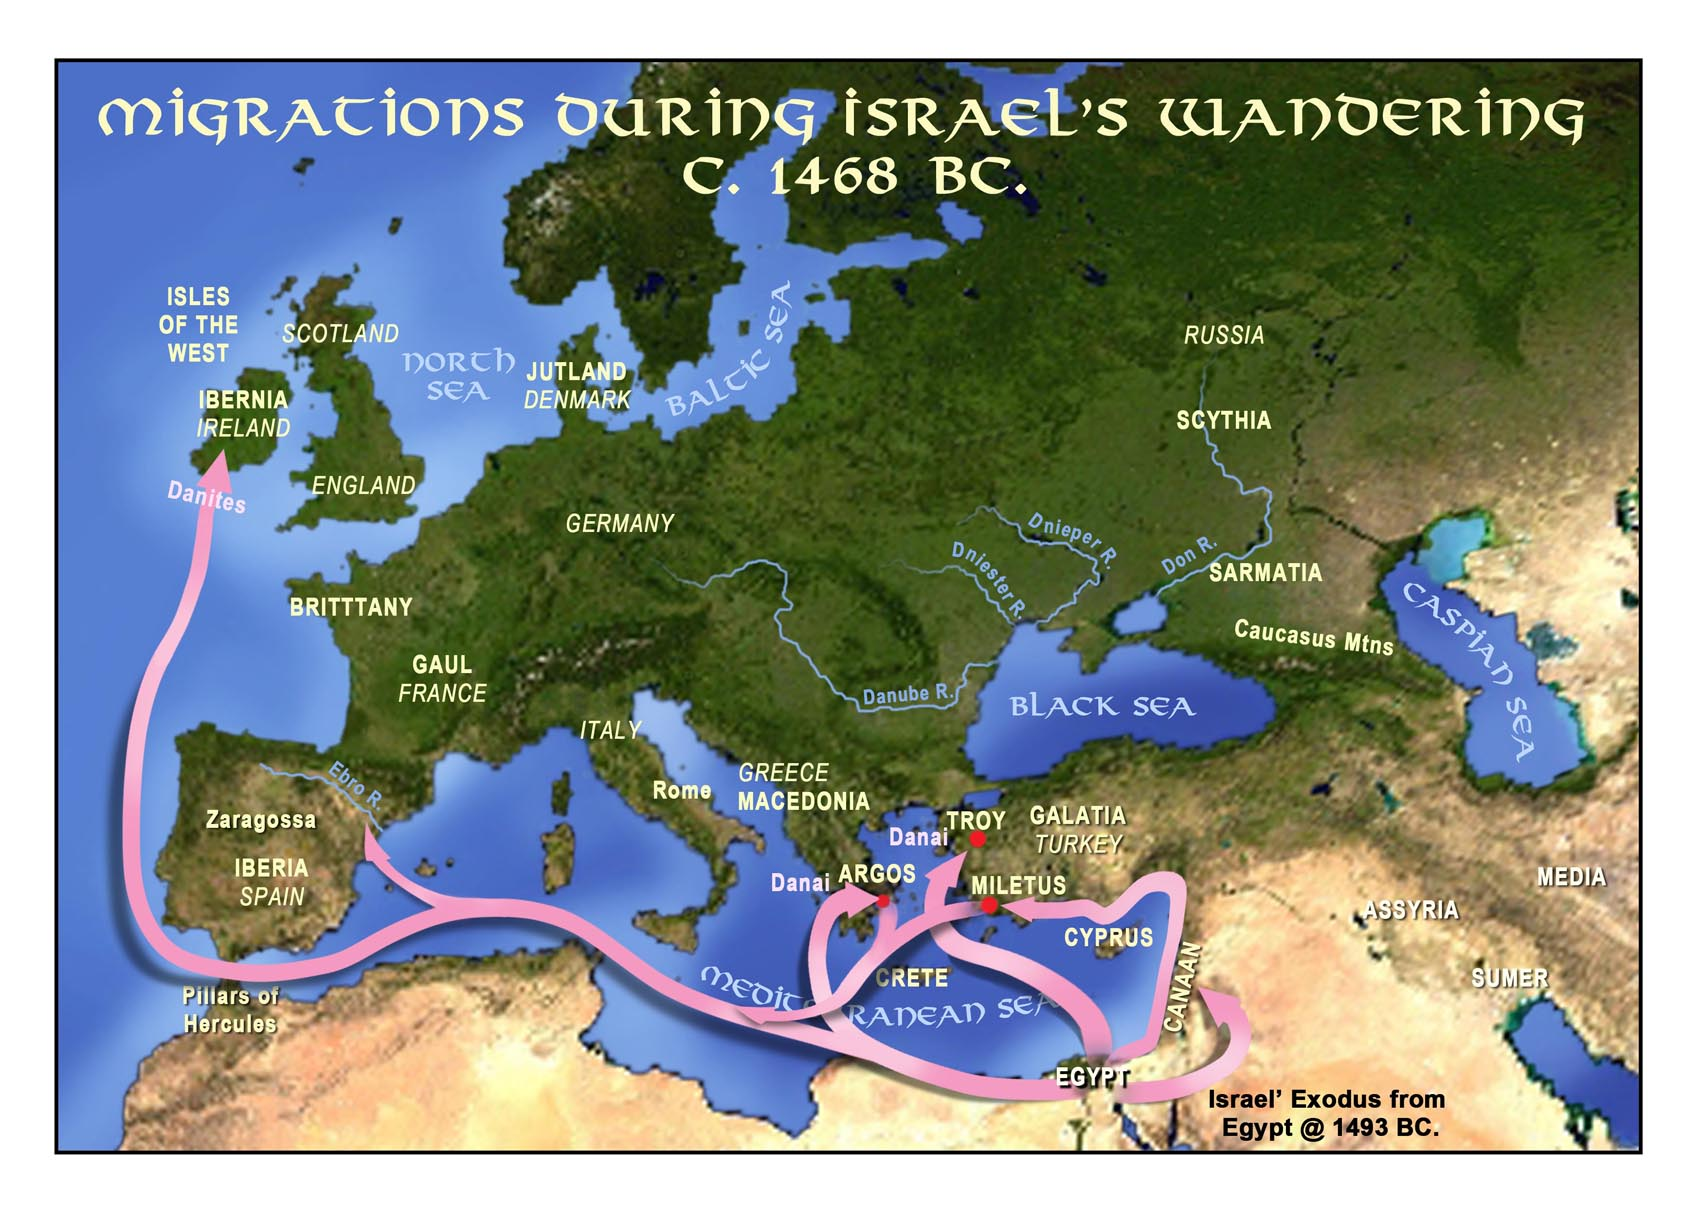 Migrations during Israel's Wandering c. 1468 B.C.